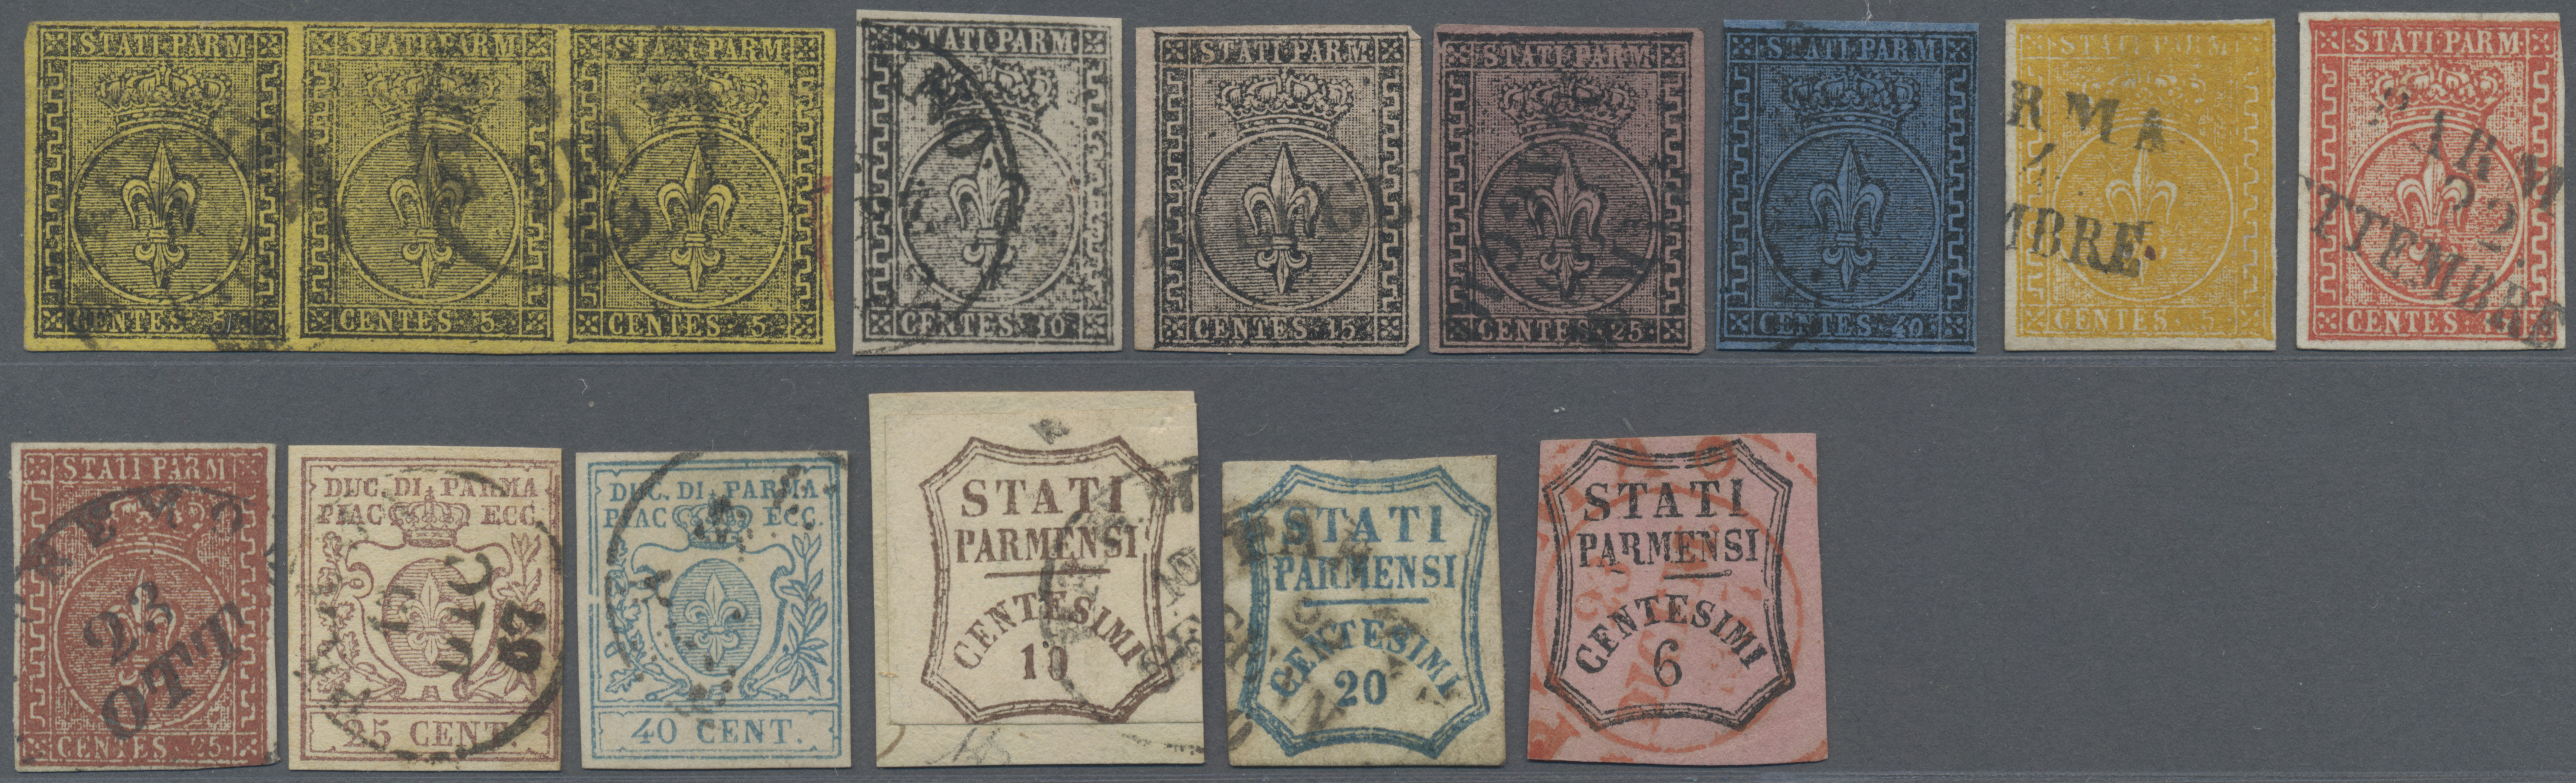 Lot 17195 - Italien - Altitalienische Staaten: Parma  -  Auktionshaus Christoph Gärtner GmbH & Co. KG Sale #48 collections Overseas  Airmail / Ship mail & Thematics